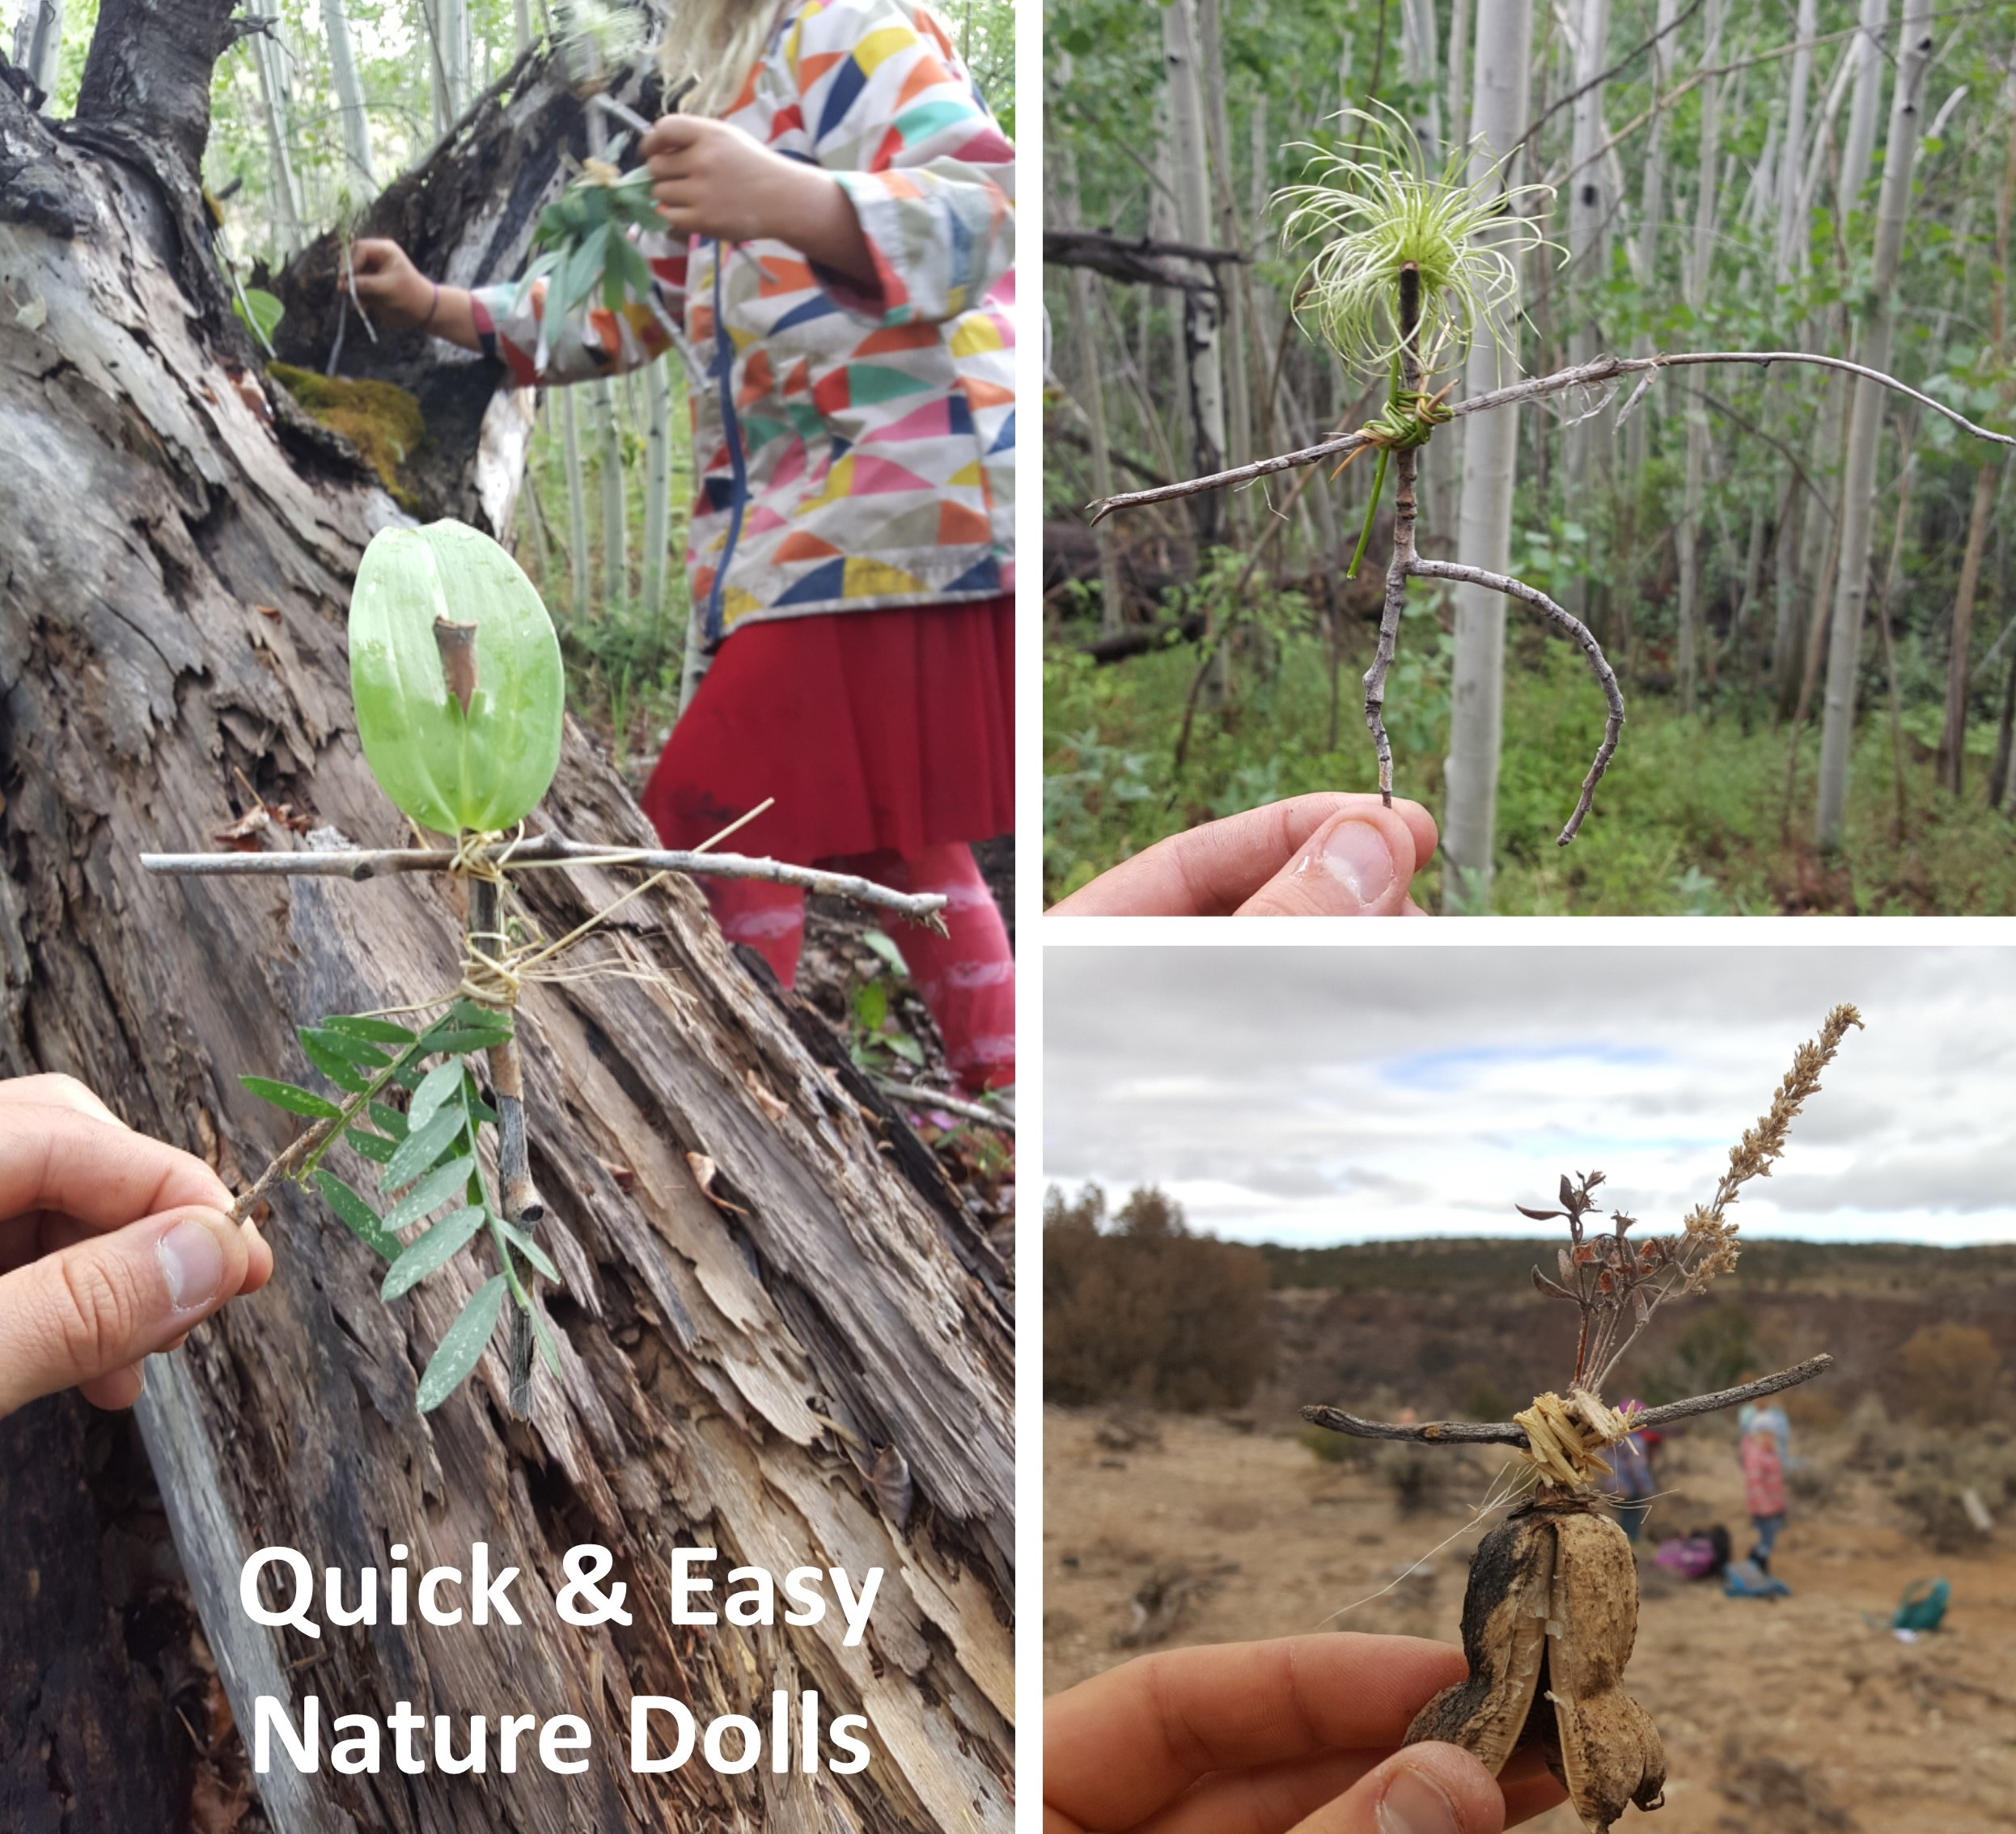 Quick & Easy Nature Dolls.jpg